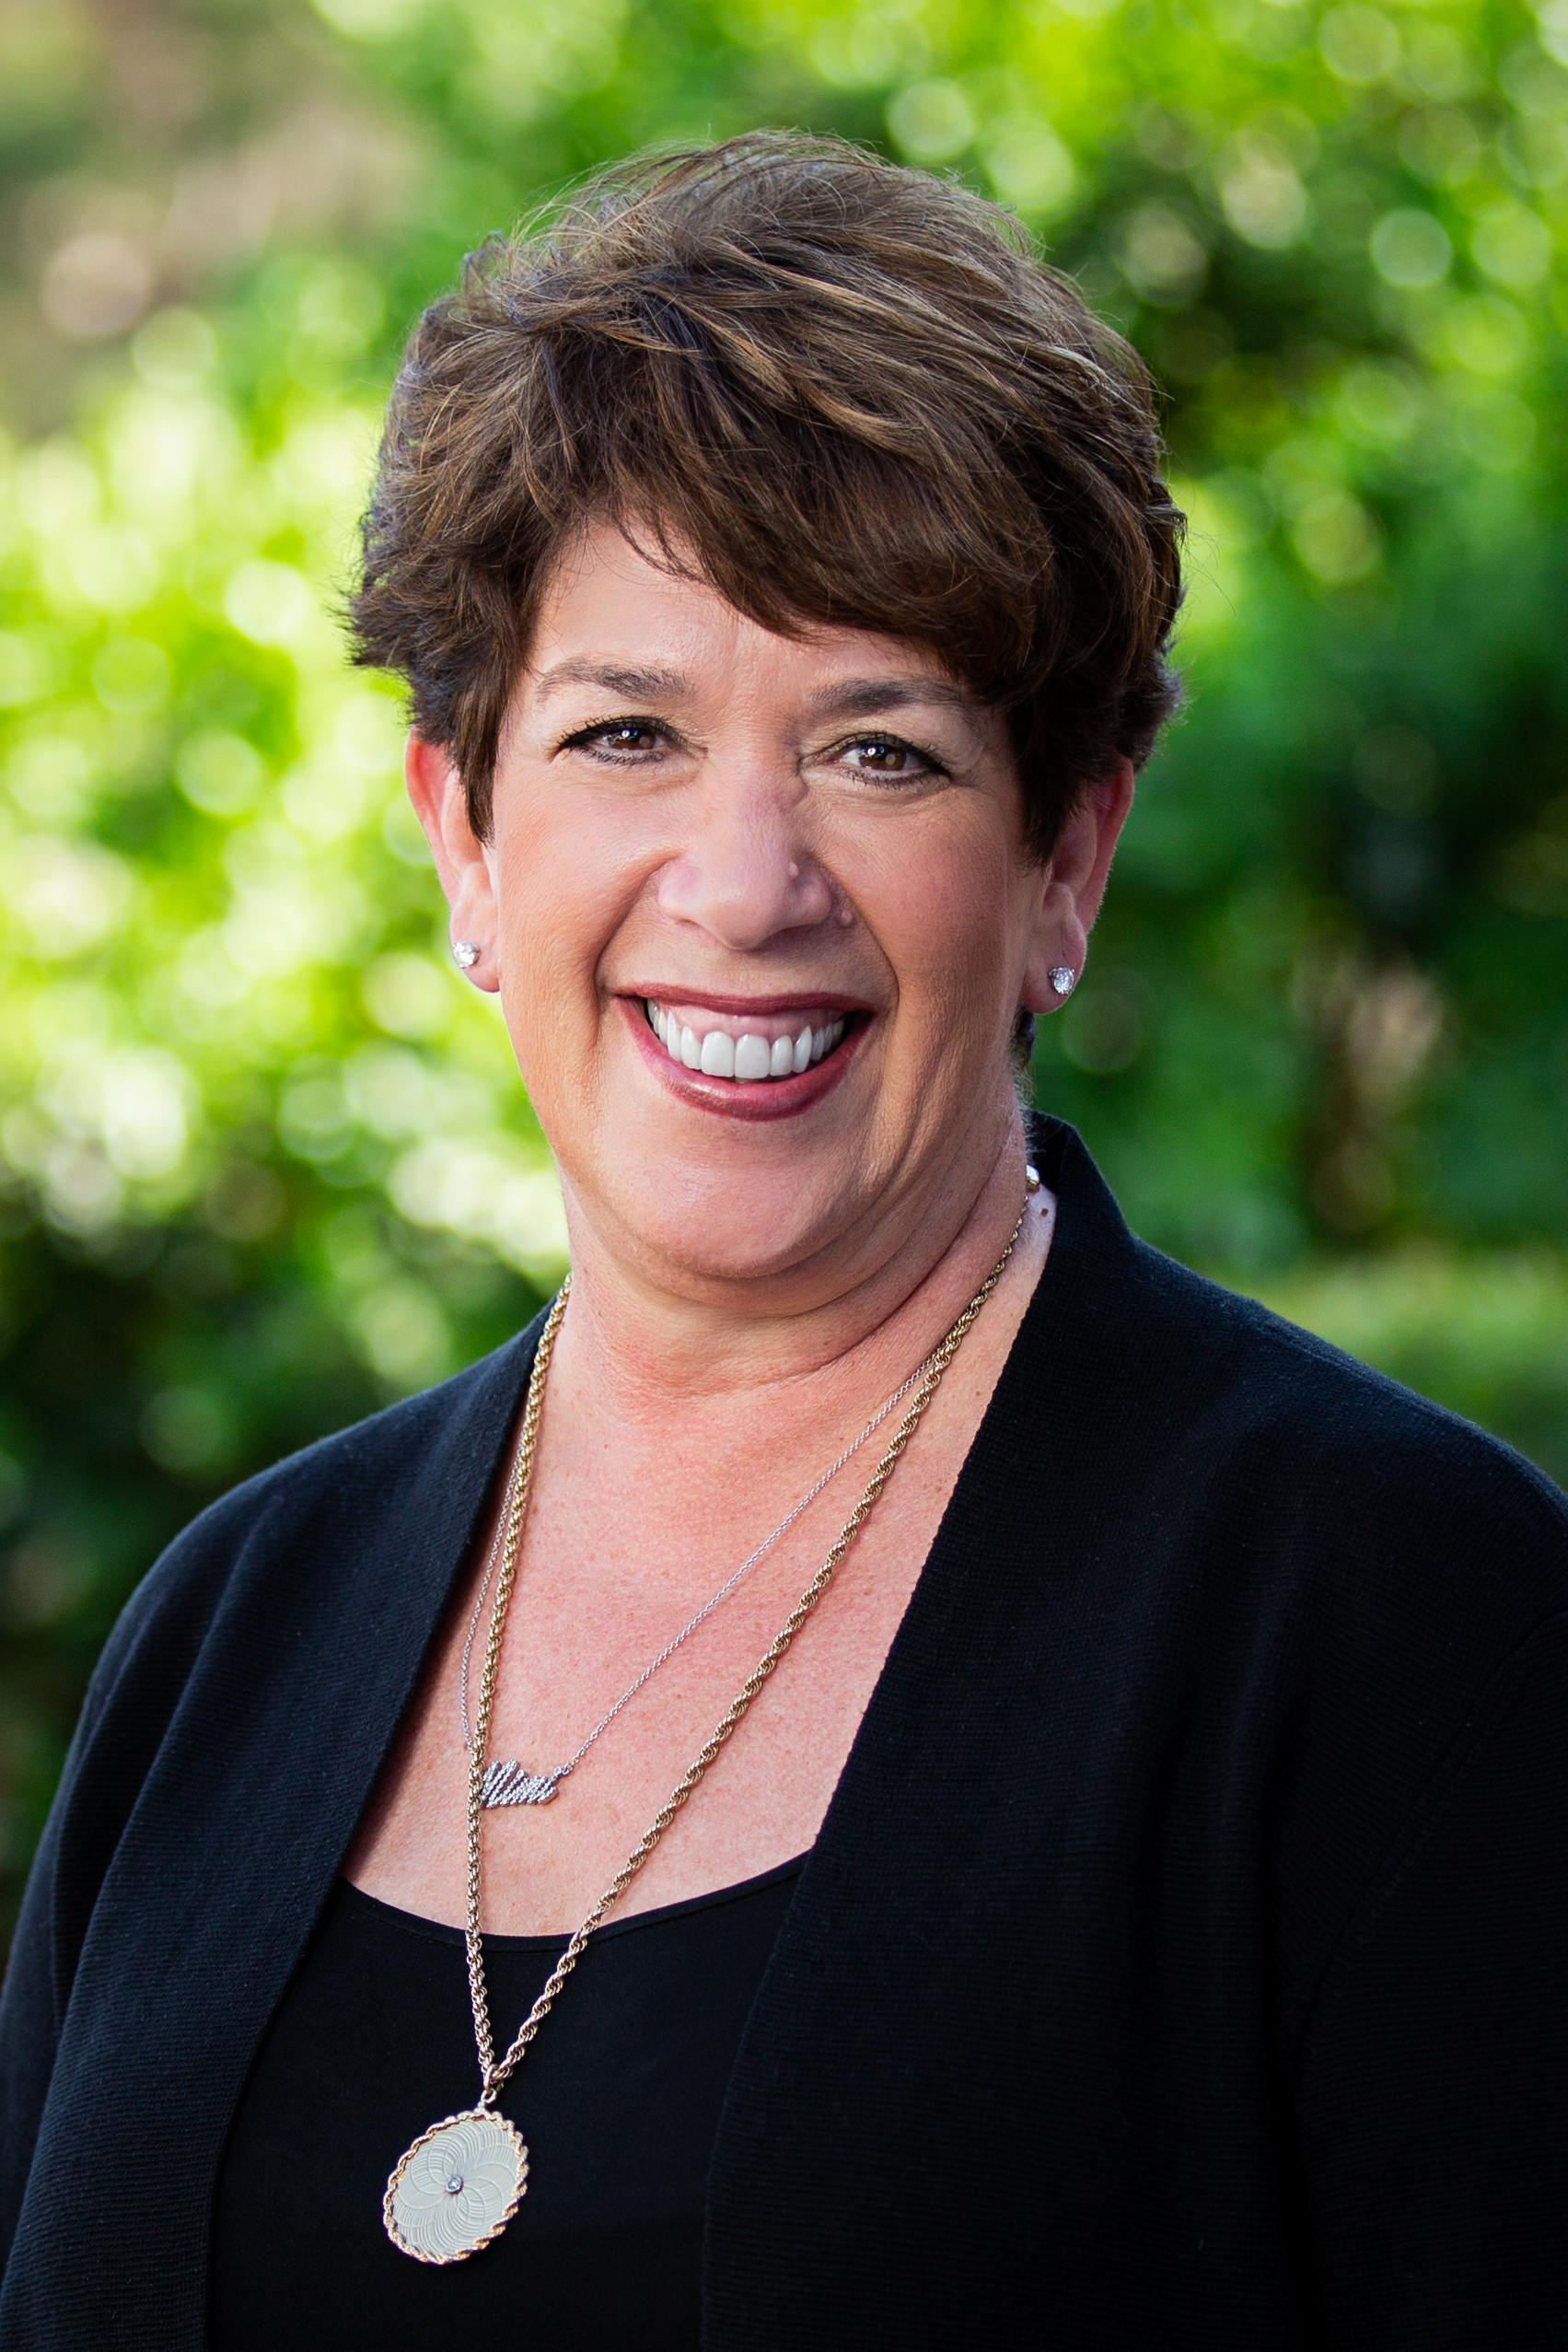 Tipton - is not a rookie. This one-woman POWERHOUSE took her first leap into the insurance industry over 40 years ago as a file clerk, and is now the President & CEO of Universal Insurance Programs.by Rachael Wheeler